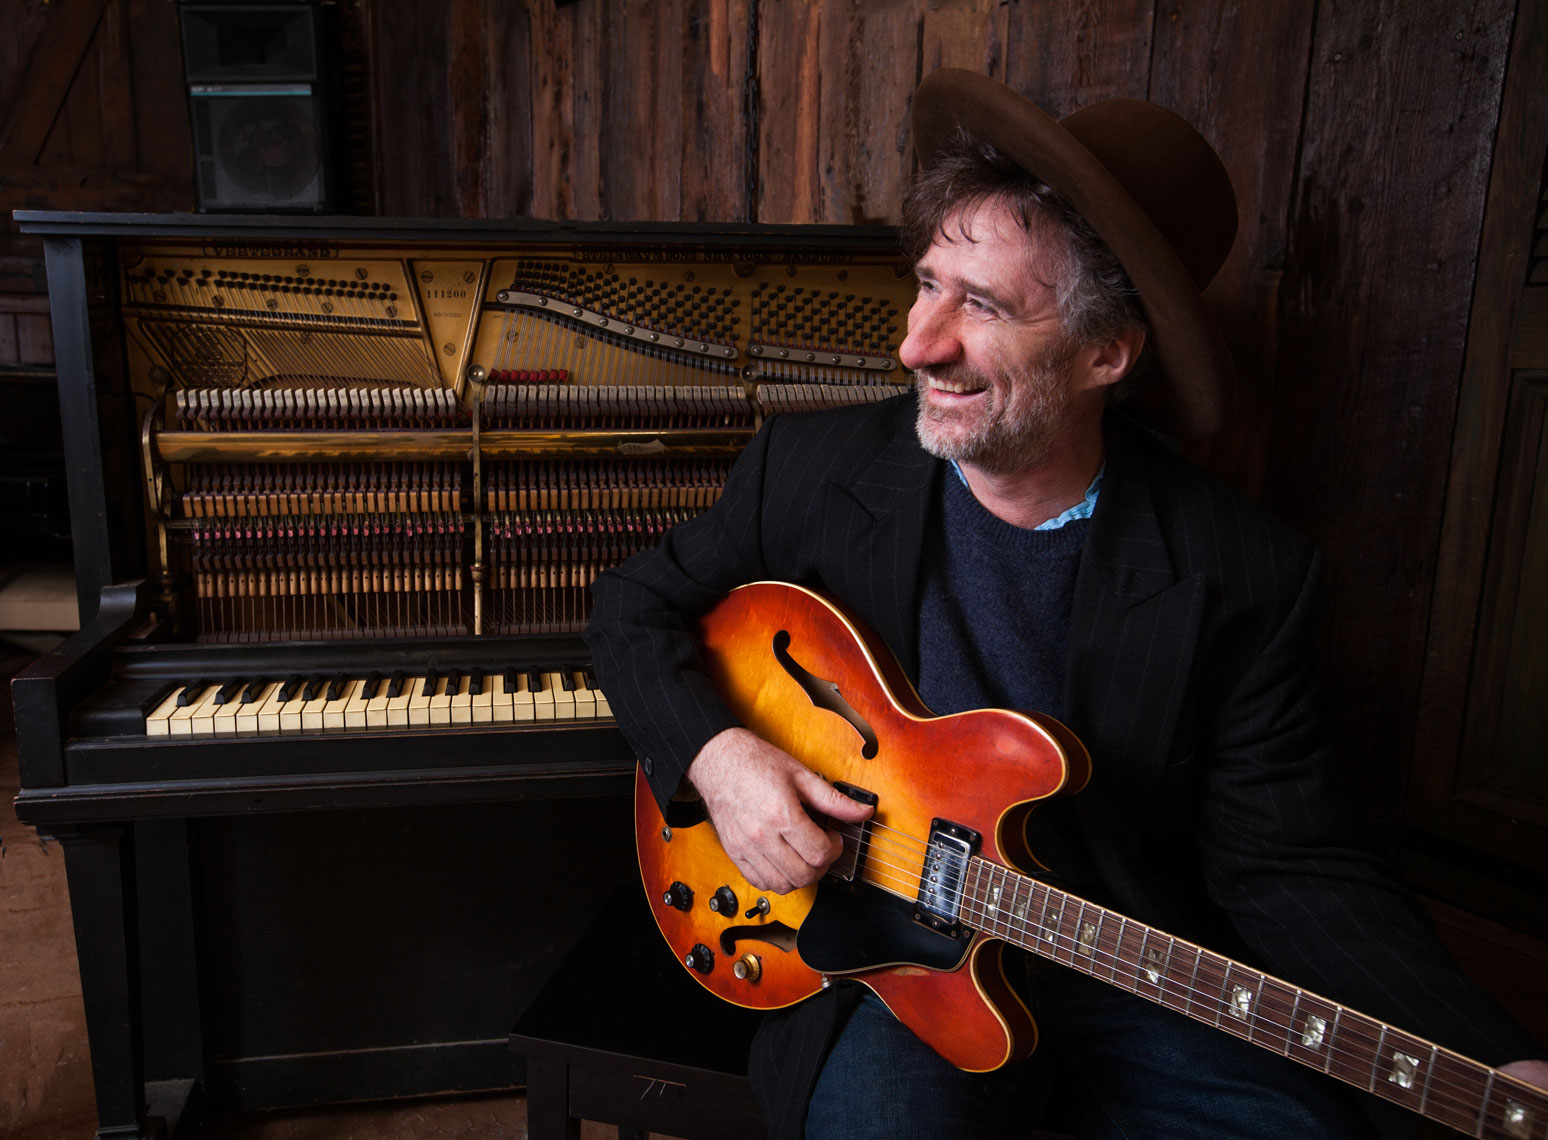 Jon Cleary in the studio